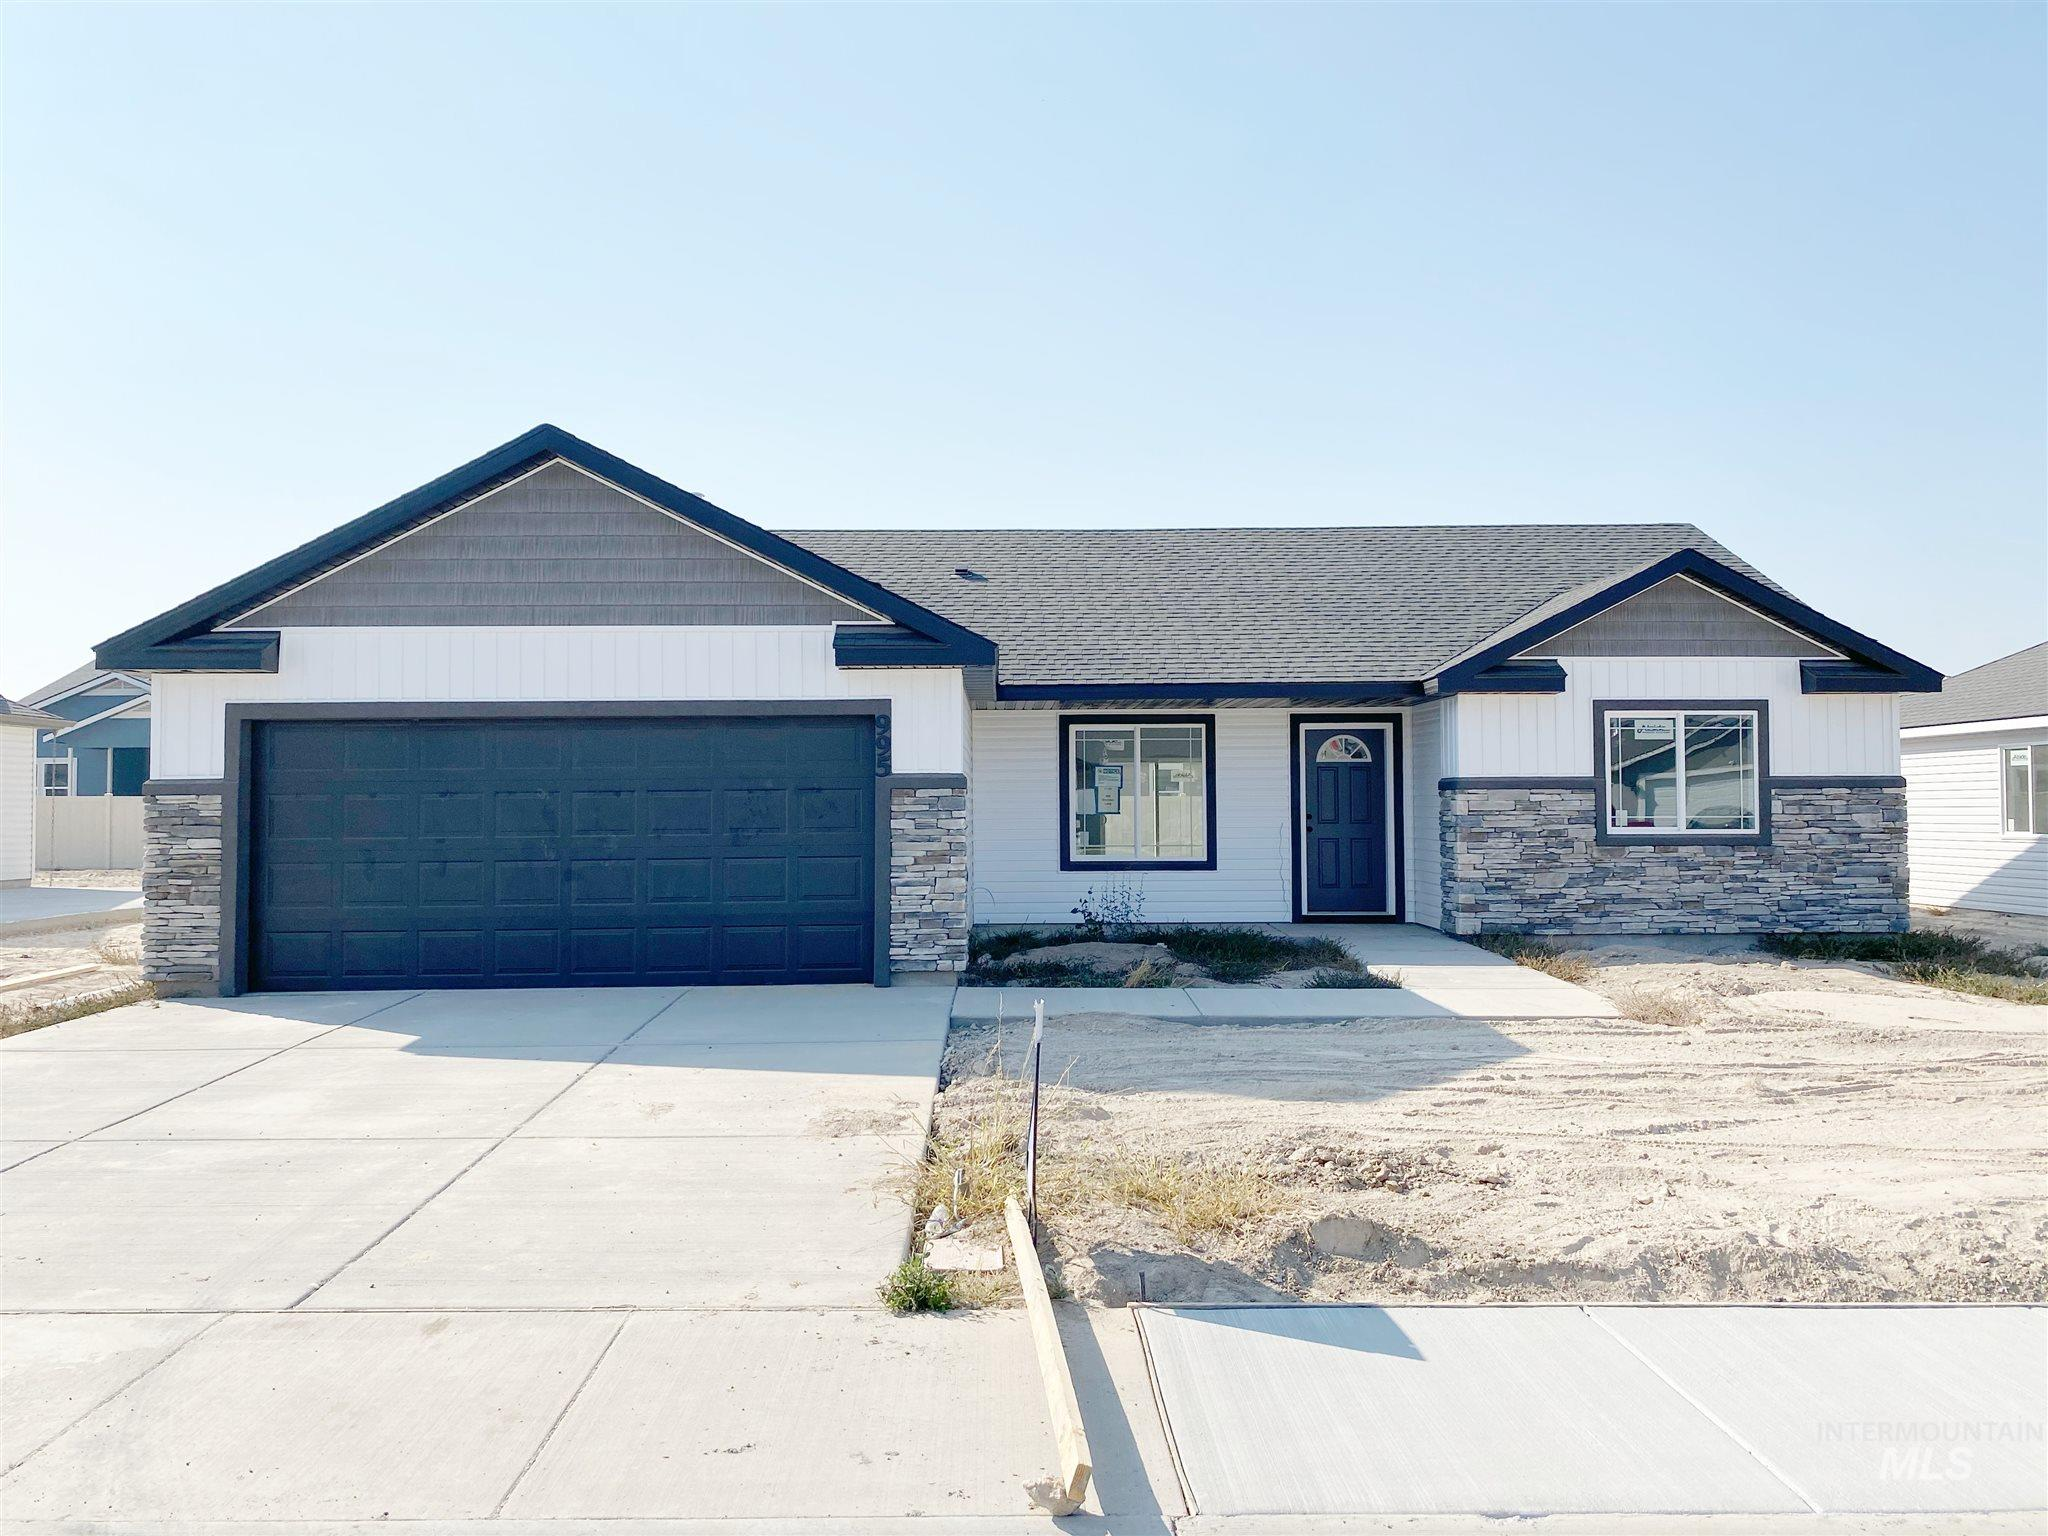 995 Birchton Loop, Twin Falls, Idaho 83301, 4 Bedrooms, 2 Bathrooms, Residential For Sale, Price $269,900, 98784679